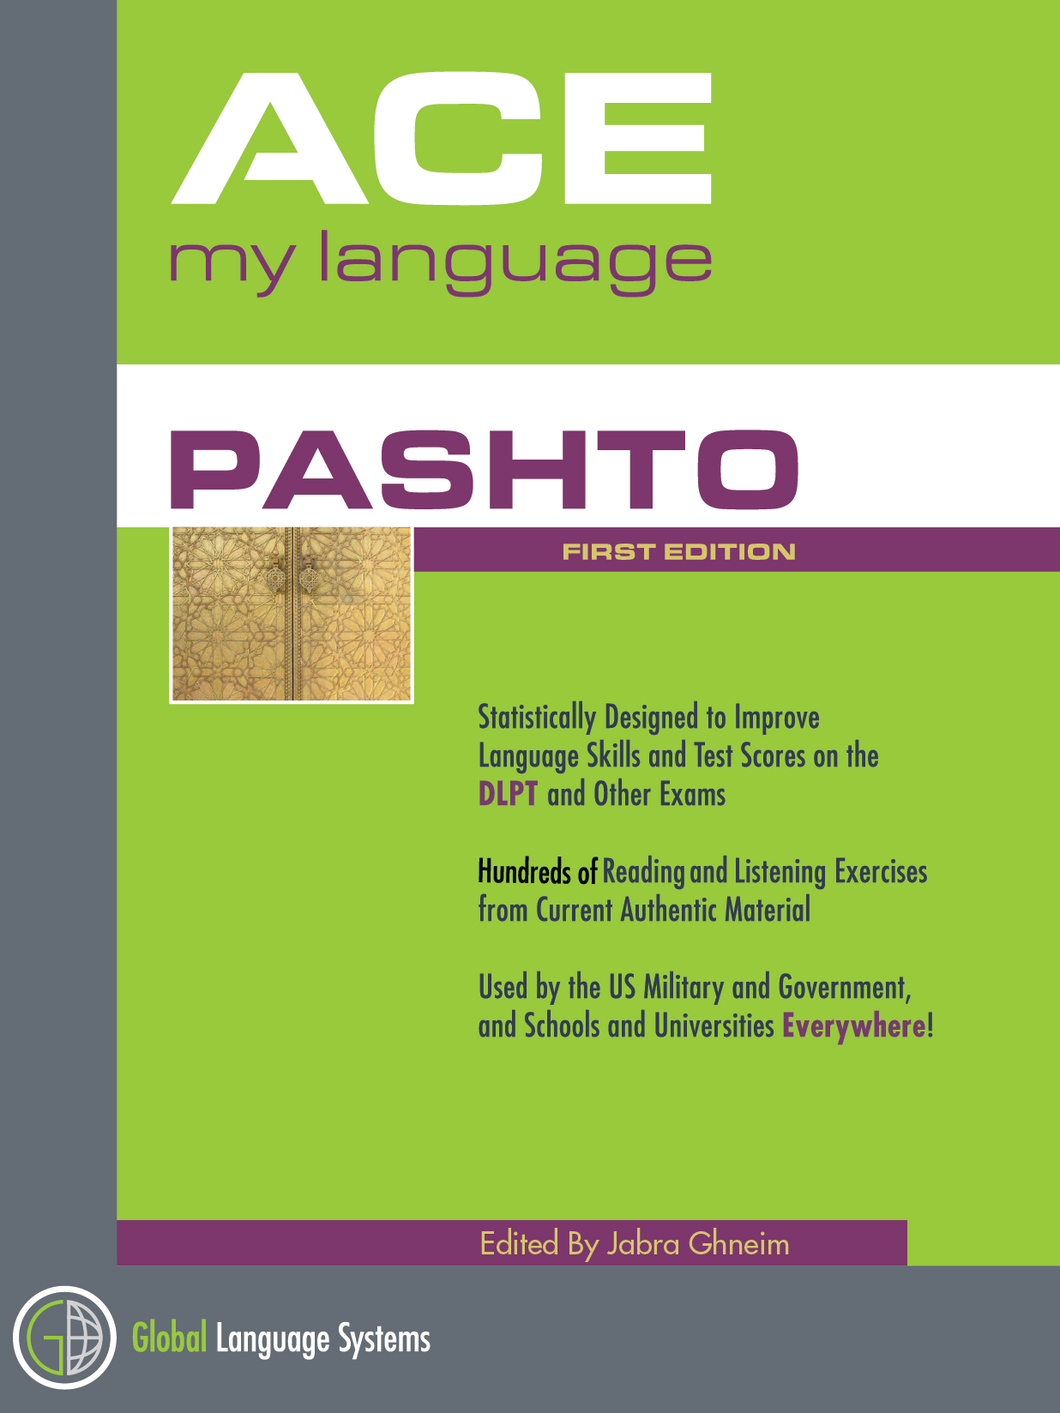 Ace My Language - PASHTO